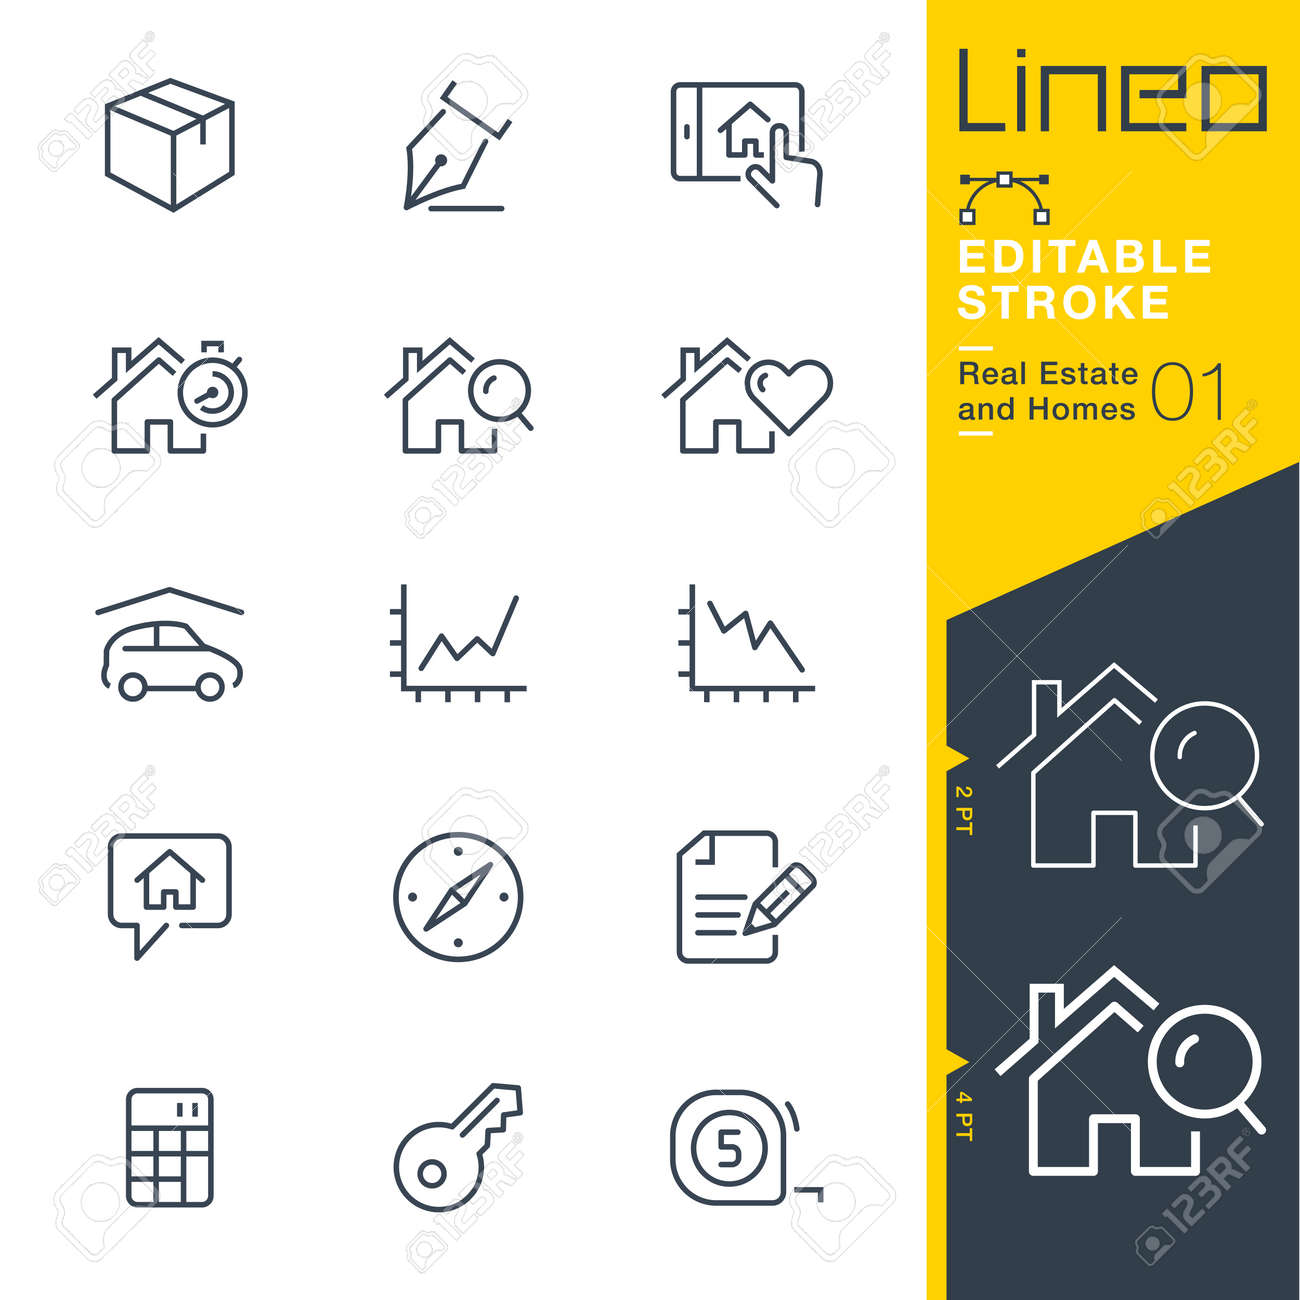 Lineo Editable Stroke - Real Estate and Homes line icons. Vector Icons - Adjust stroke weight - Expand to any size - 85427061